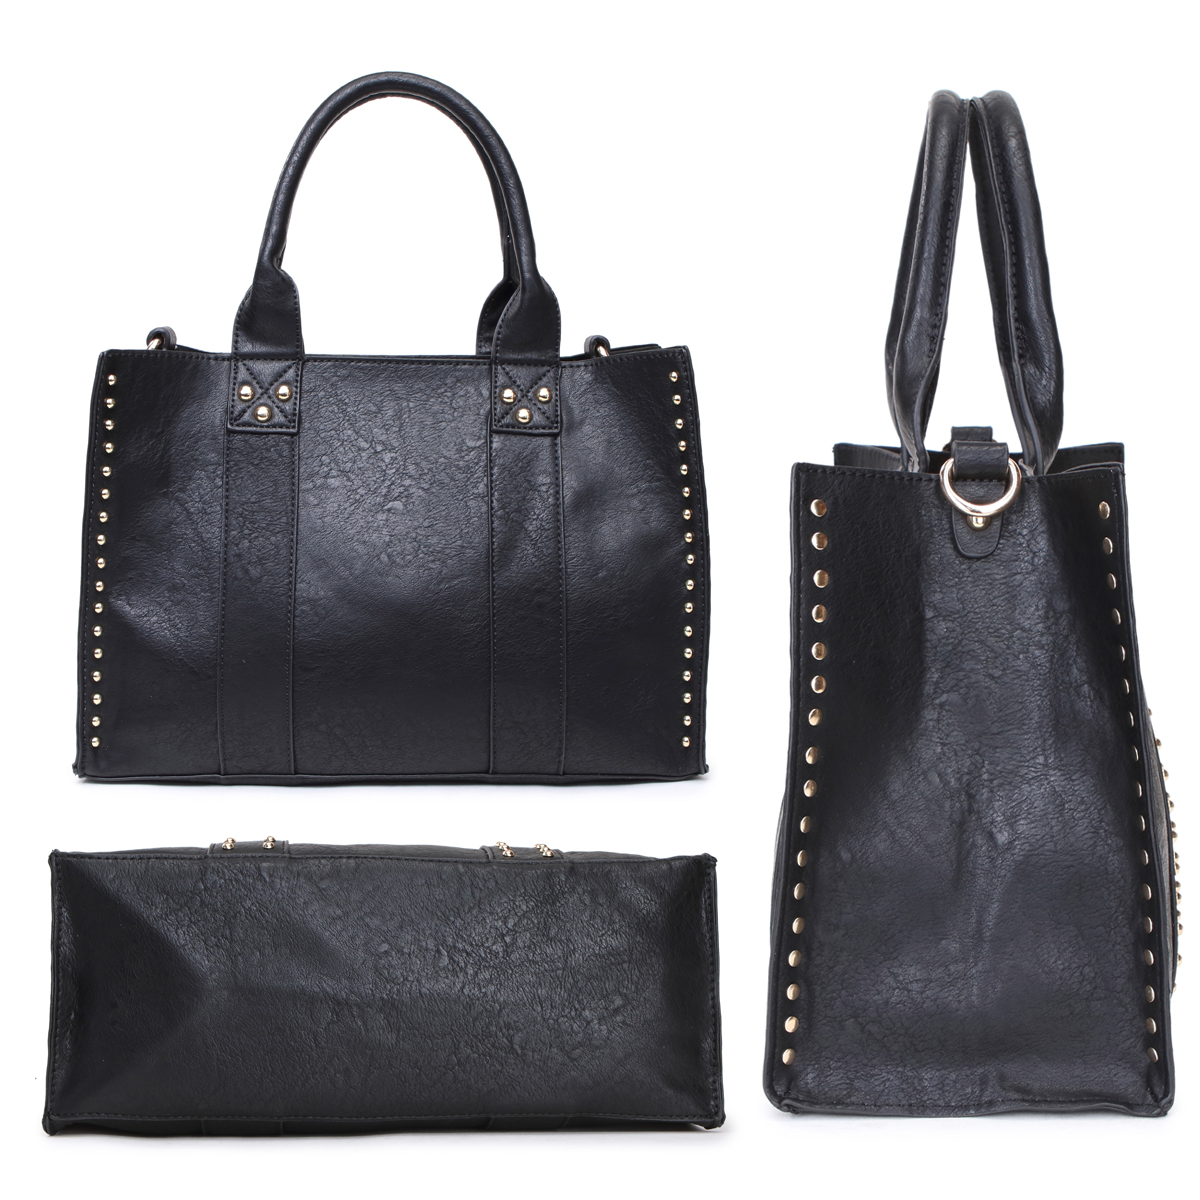 Dasein Studded Tote with Detachable Organizer Bag/pouch and Matching Wristlet